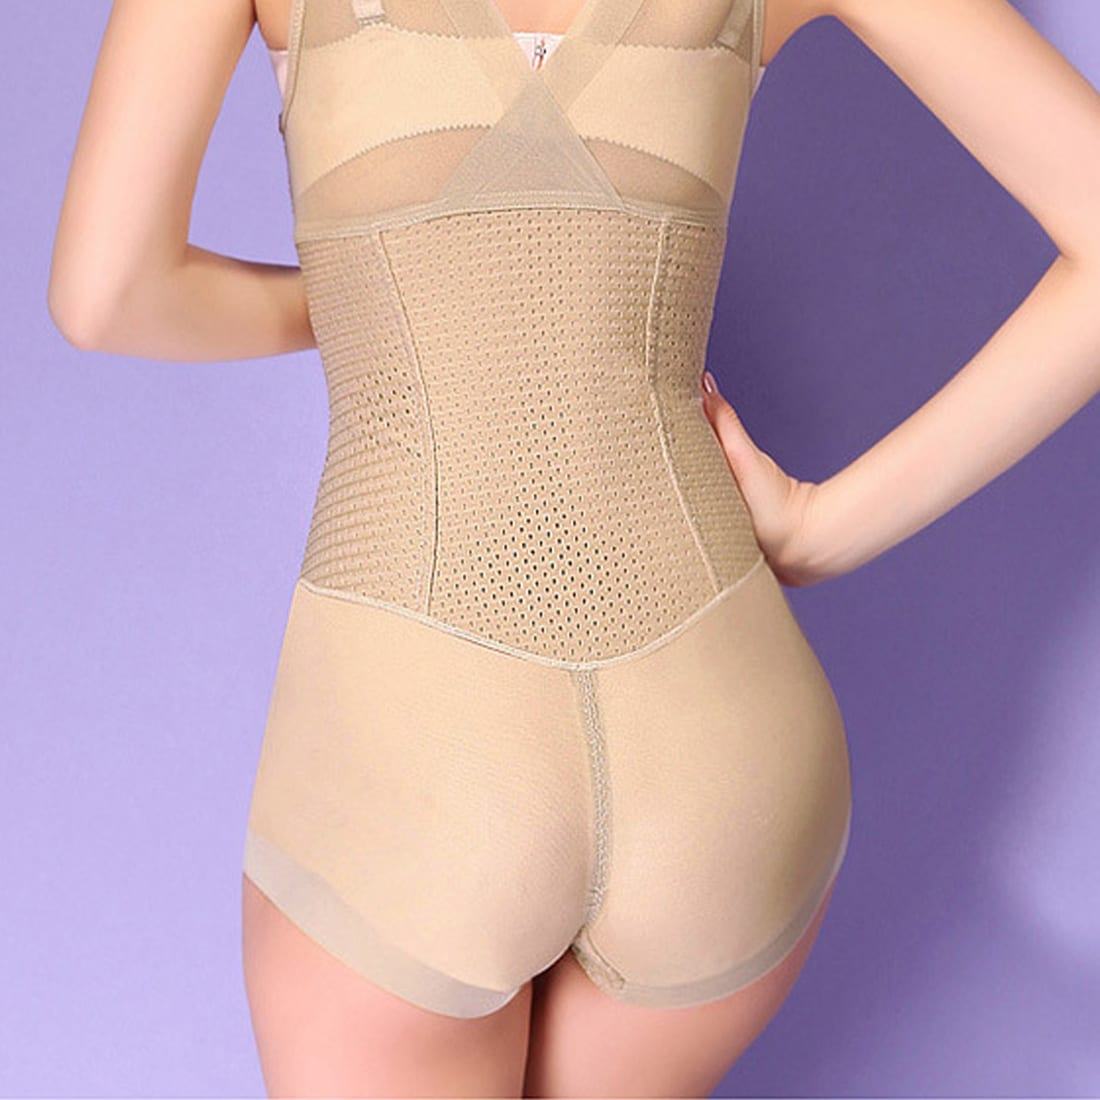 8b3d0bf5bb44d Shop Full Body Tummy Waist Shaping Shapewear Bodysuits Shaper Skin Color  Size XL - On Sale - Free Shipping On Orders Over  45 - Overstock - 17590644